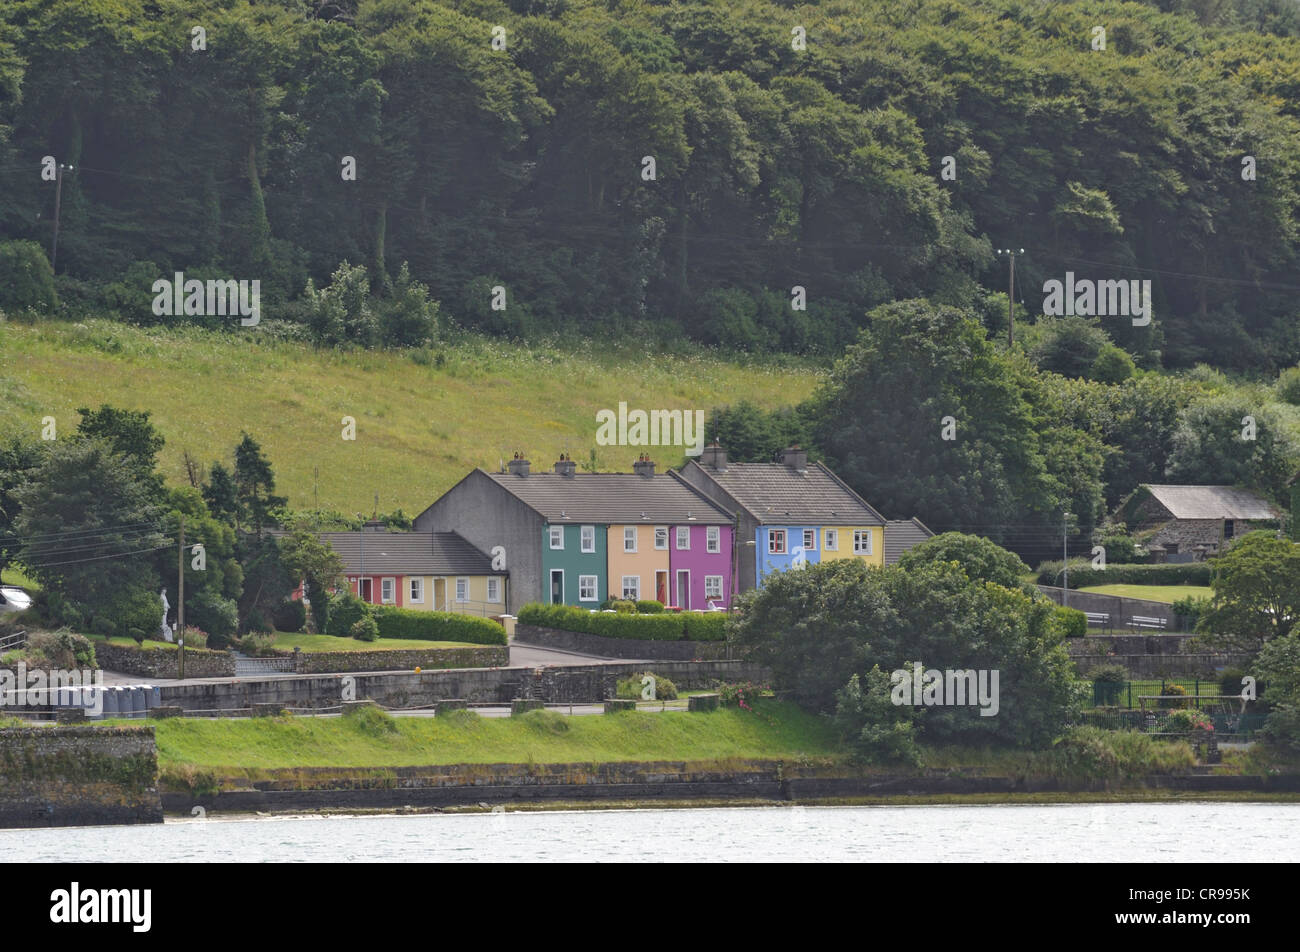 Colourful house, West Cork, Ireland - Stock Image